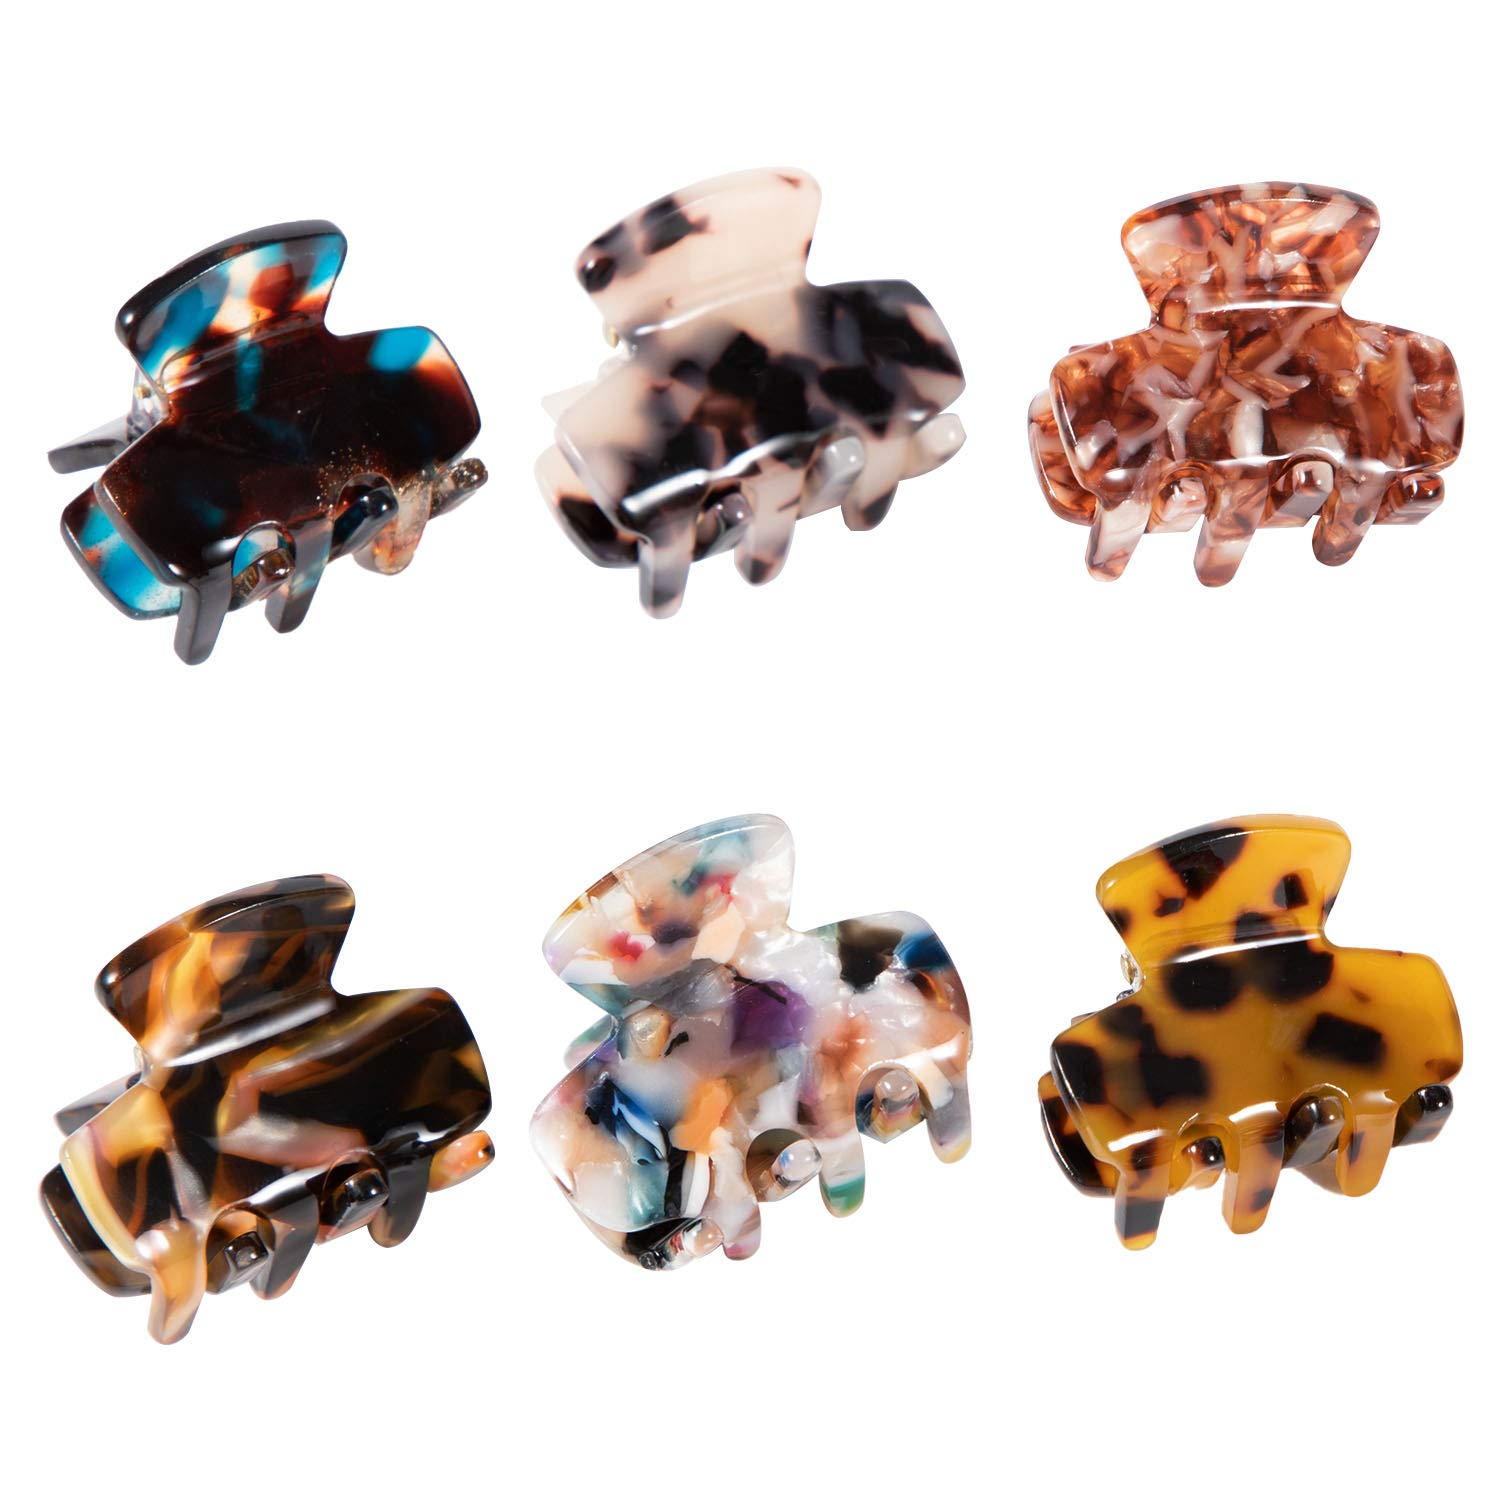 Big Tortoise Hair Claw Cellulose Acetate Girlish Hair Clip,Hollow Hair Claw Clips Hair Clamp For Girl Hair Claw Clip,gifts for girls